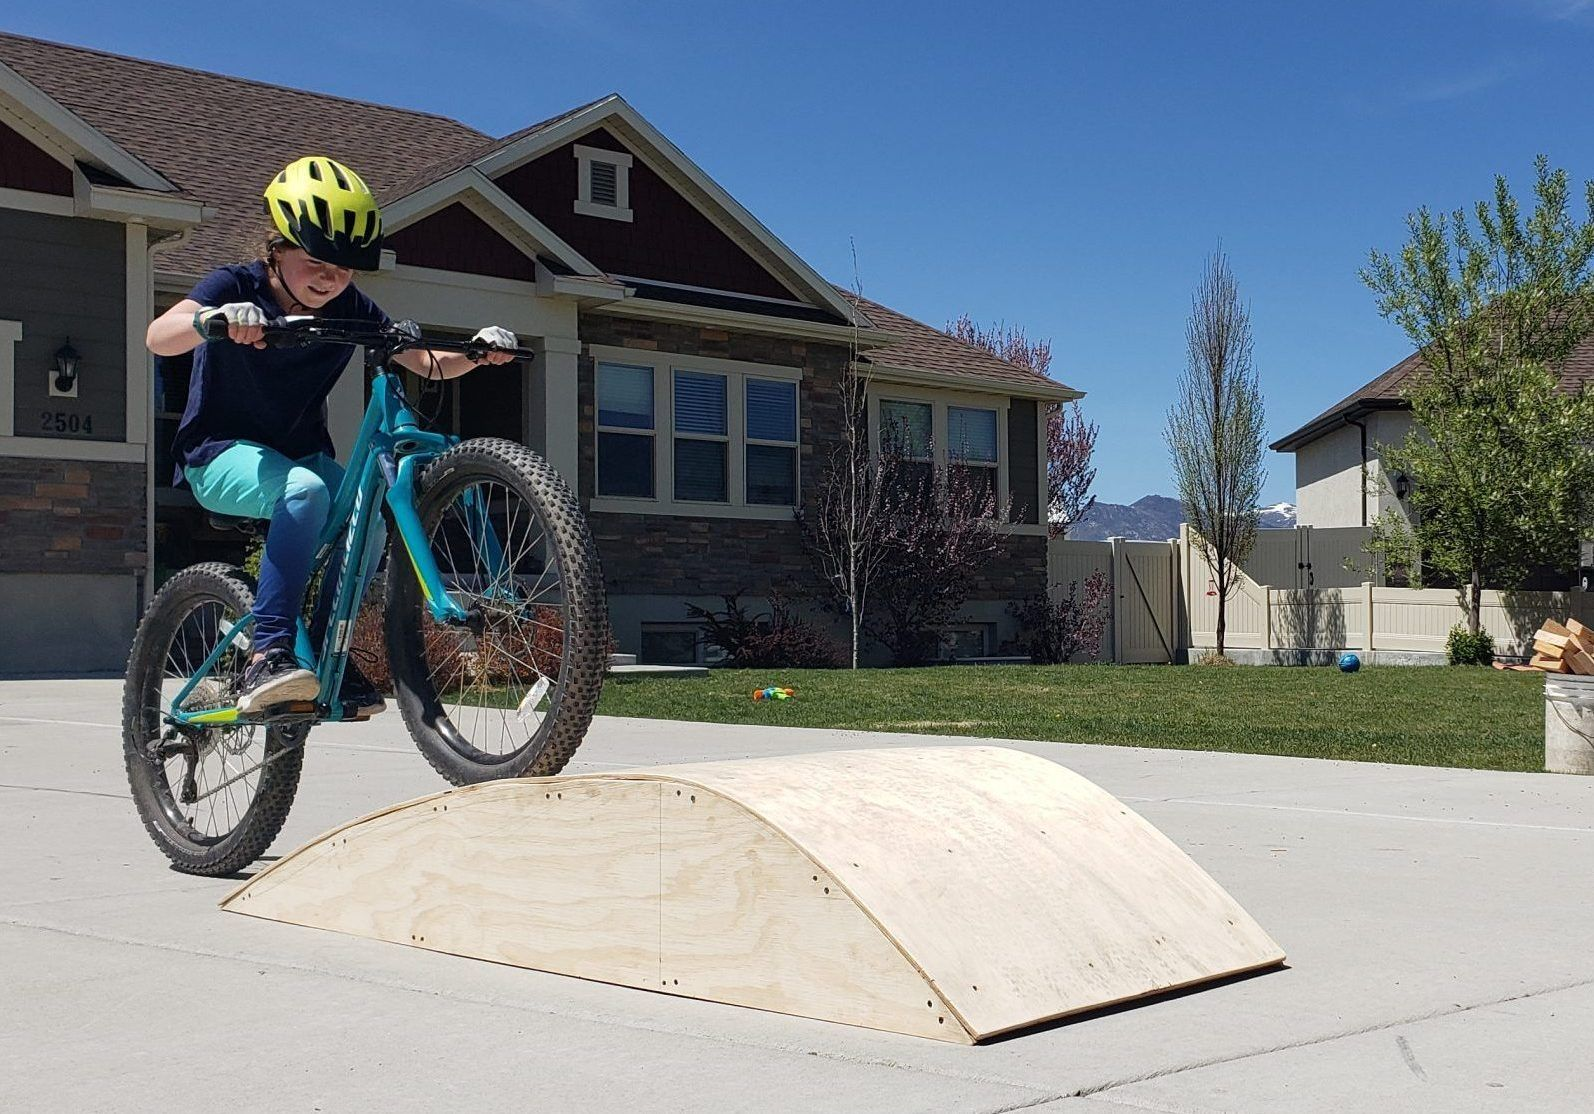 10 year old girl riding over a roller ramp on a mountain bike